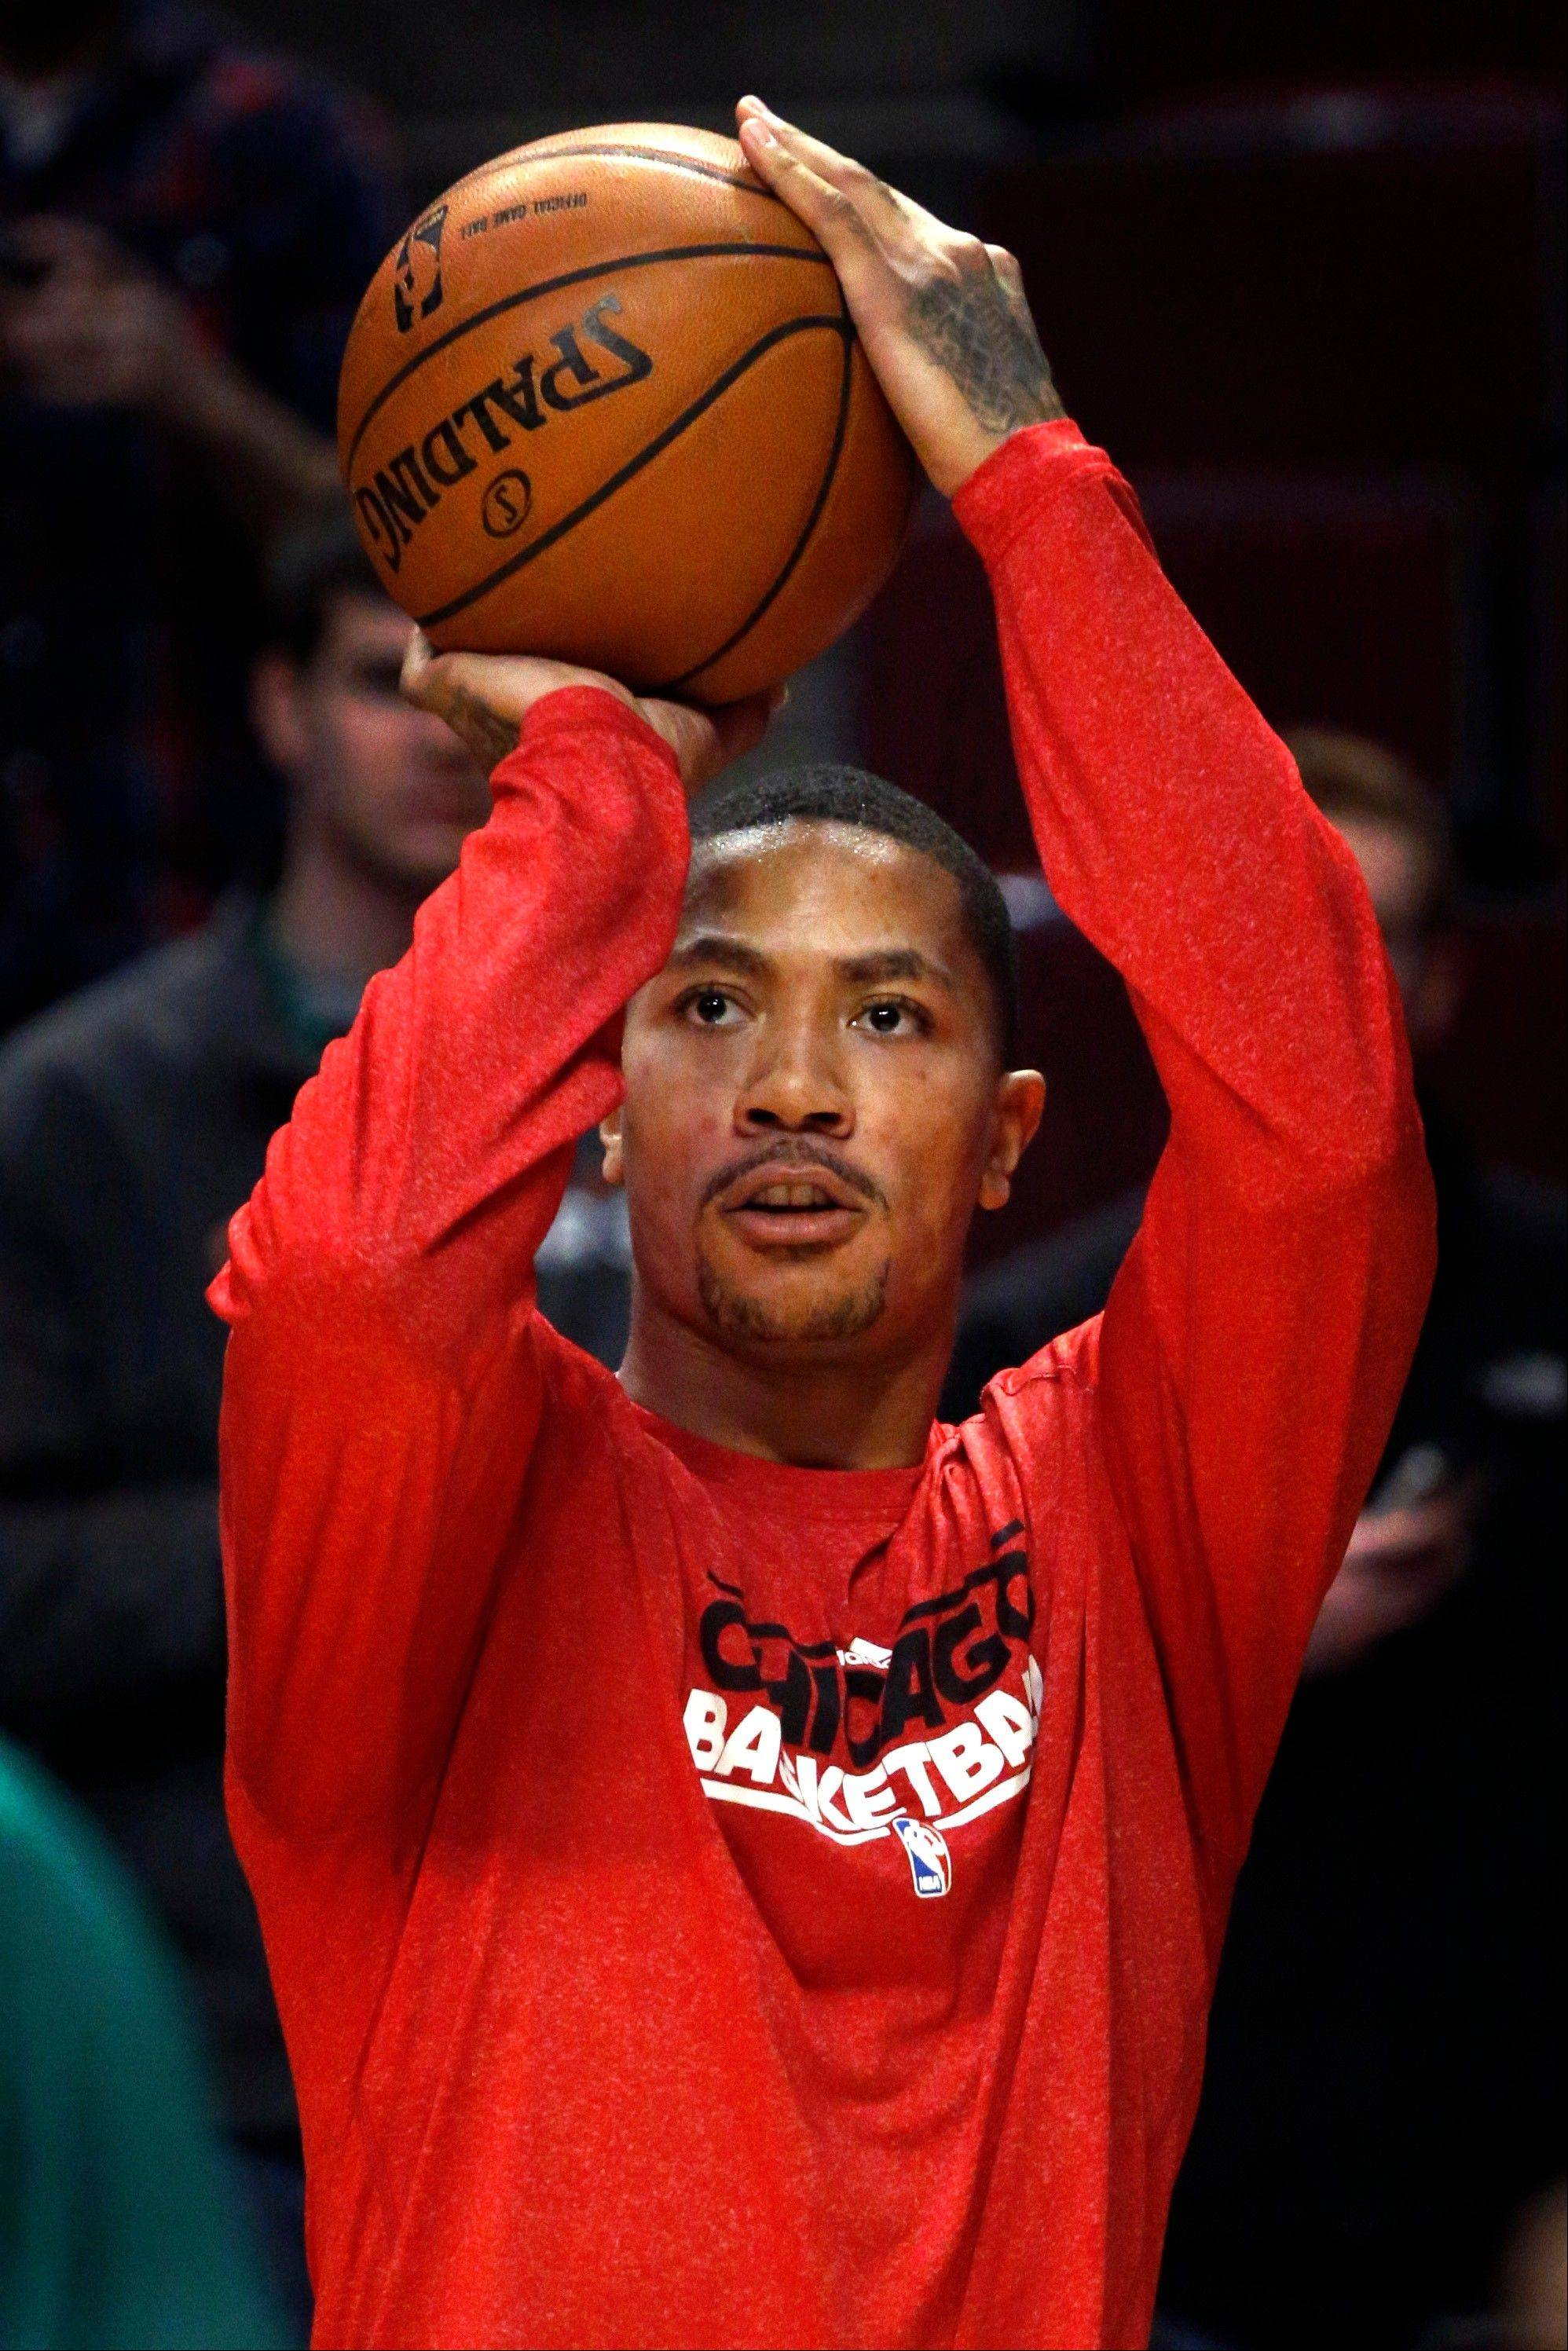 The Bulls' Derrick Rose has been able to work out before games, but he has not returned to action as he continues his rehabilitation from surgery to repair a torn anterior cruciate ligament in his left knee.